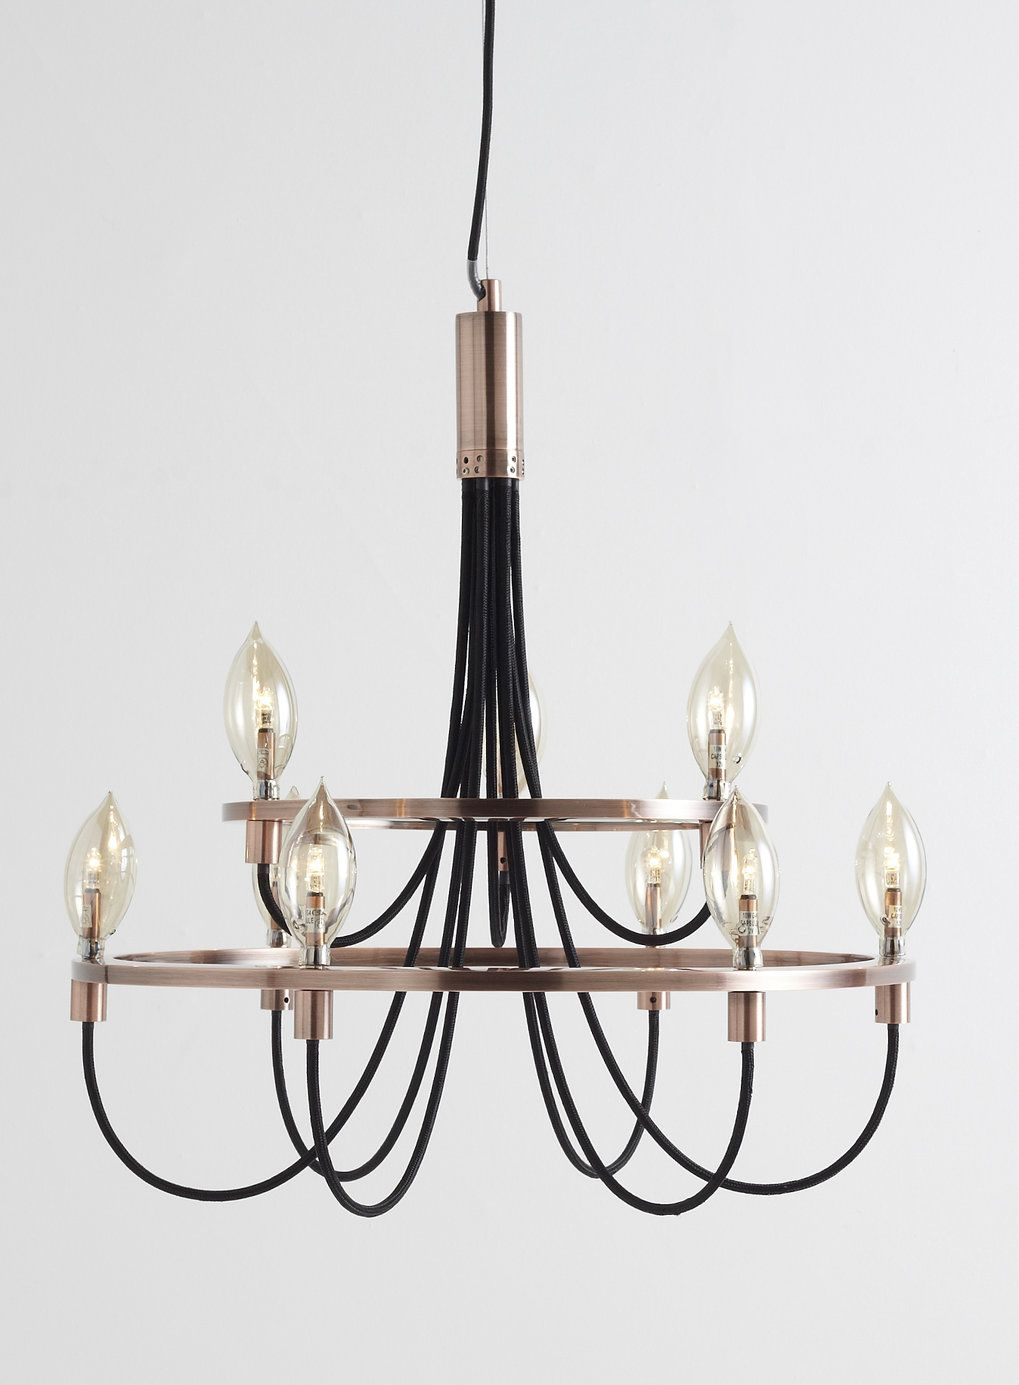 Bathroom Chandeliers Bhs copper frederica candelabra ceiling light - bhs | for the home